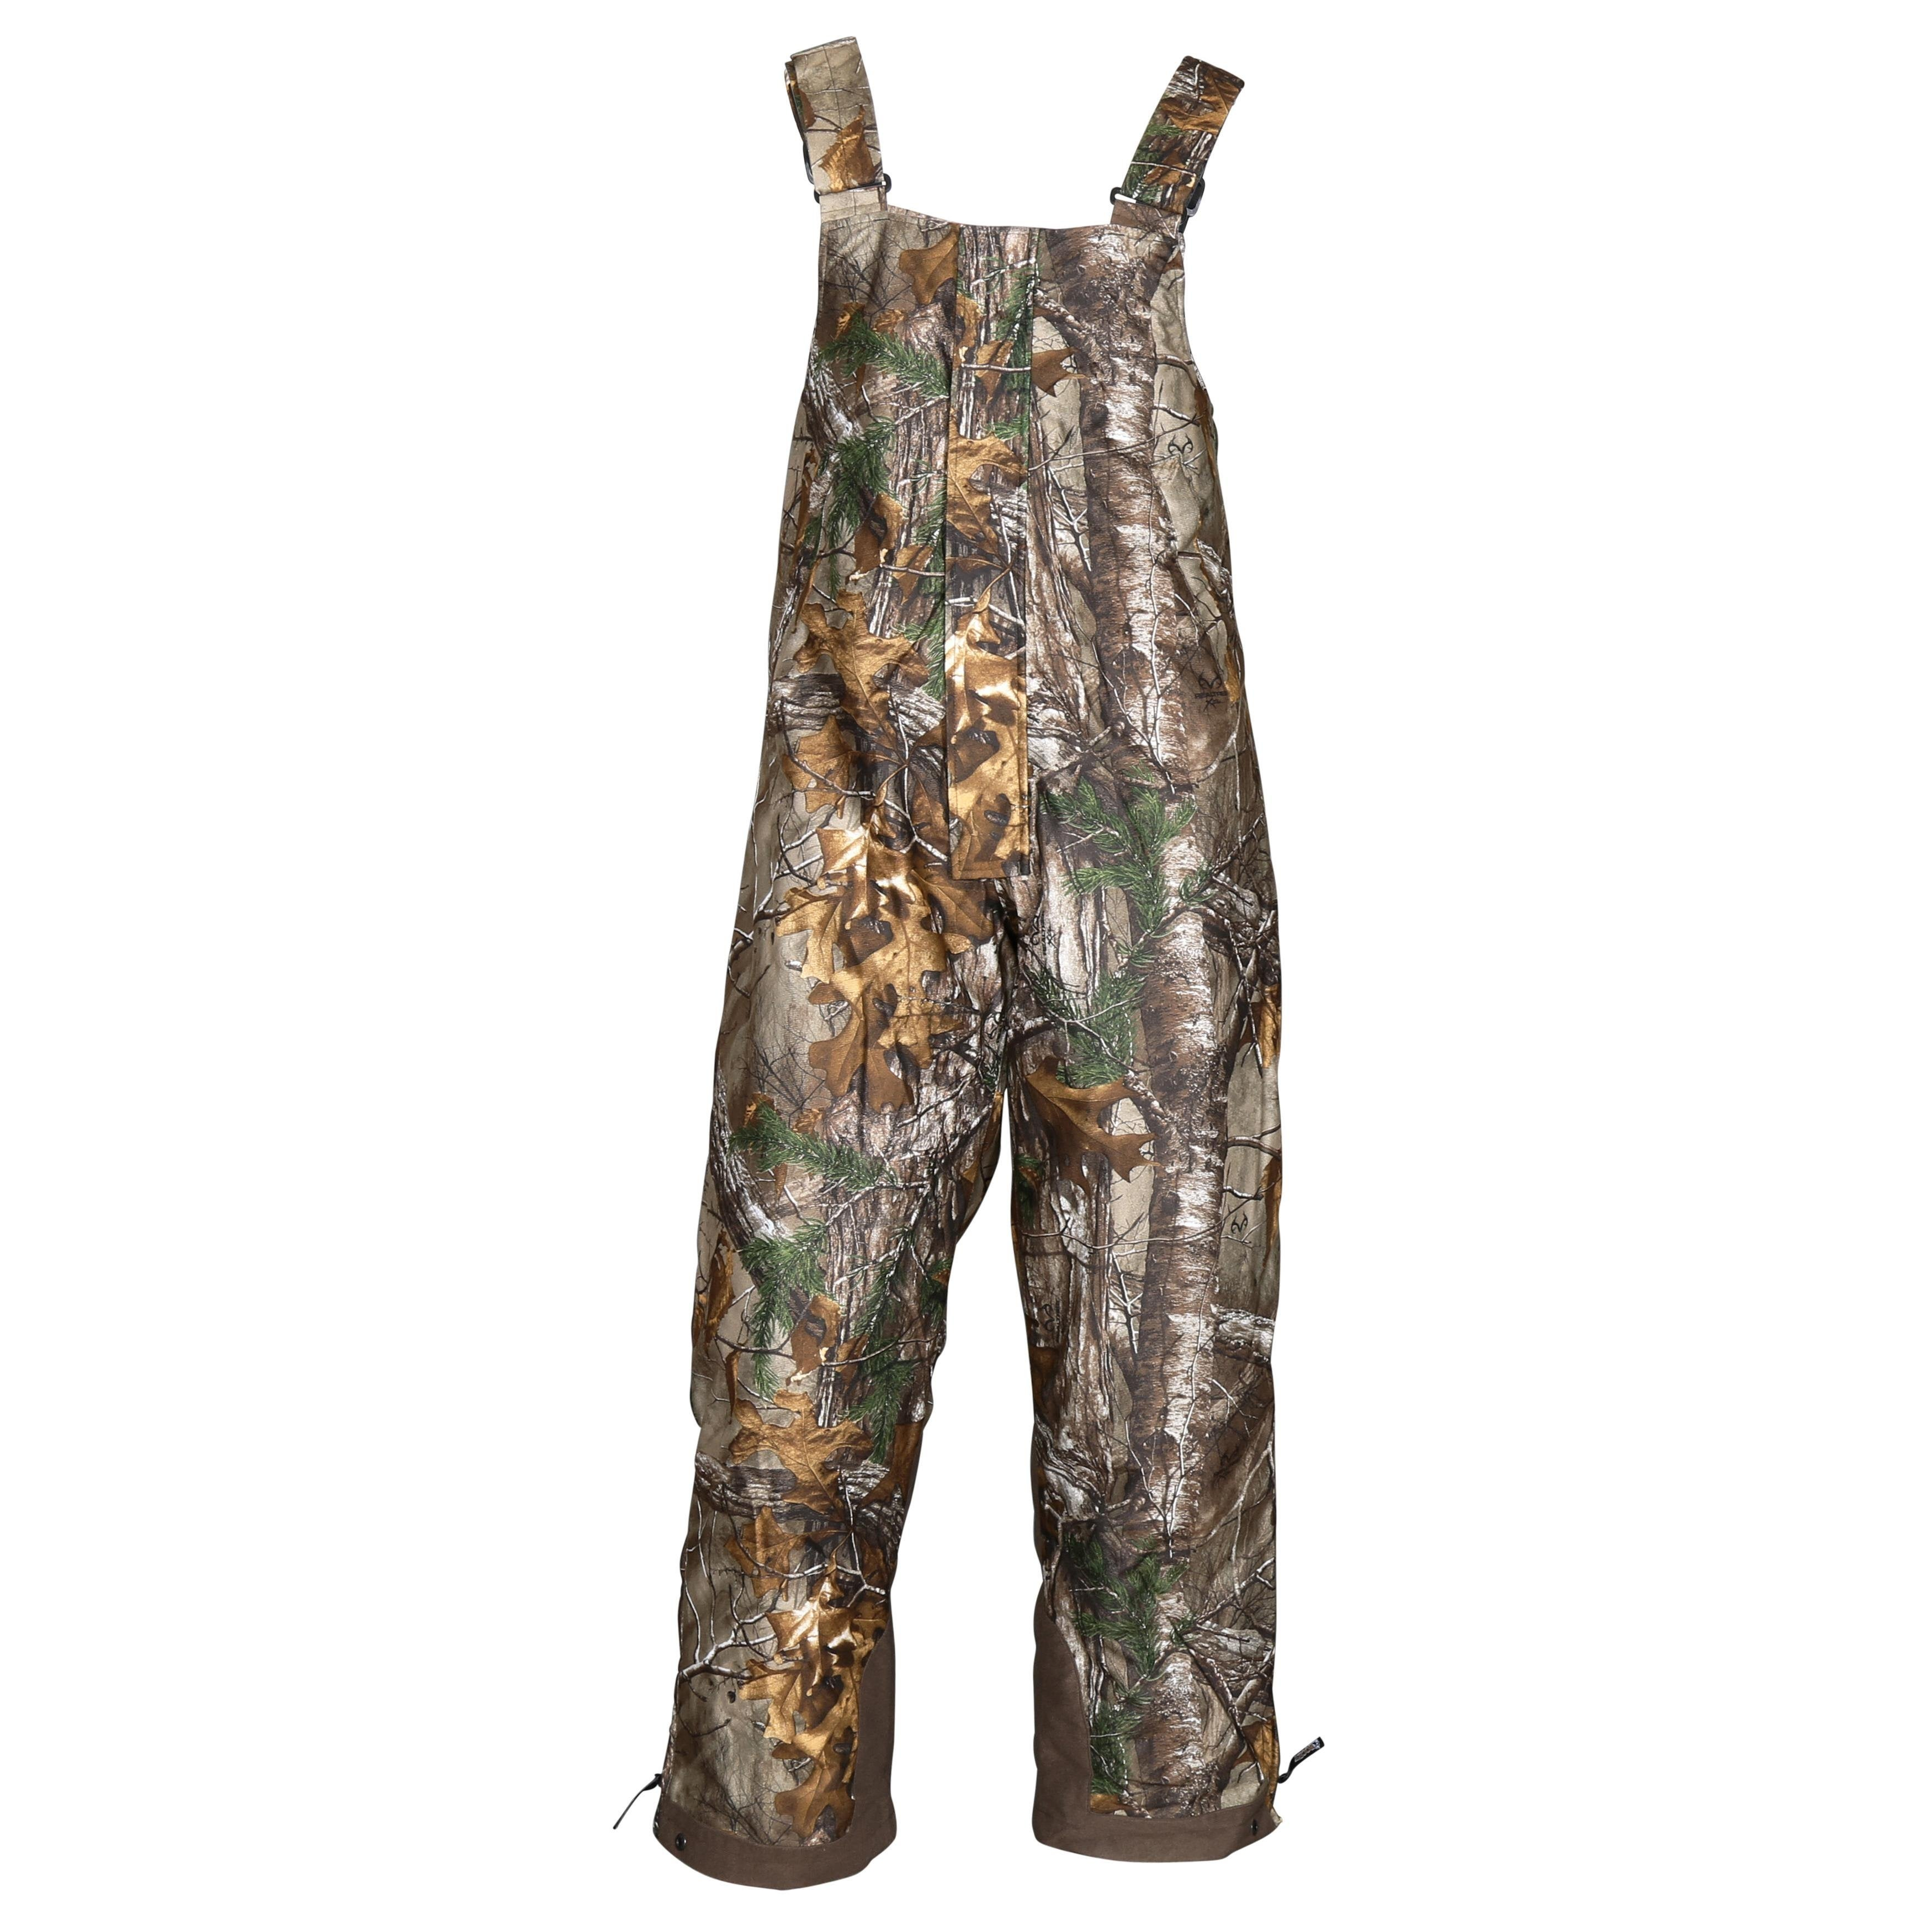 e335bccf27cf6 Shop Rocky ProHunter Camo Waterproof Insulated Bibs, #600429 - Free  Shipping Today - Overstock - 27422492